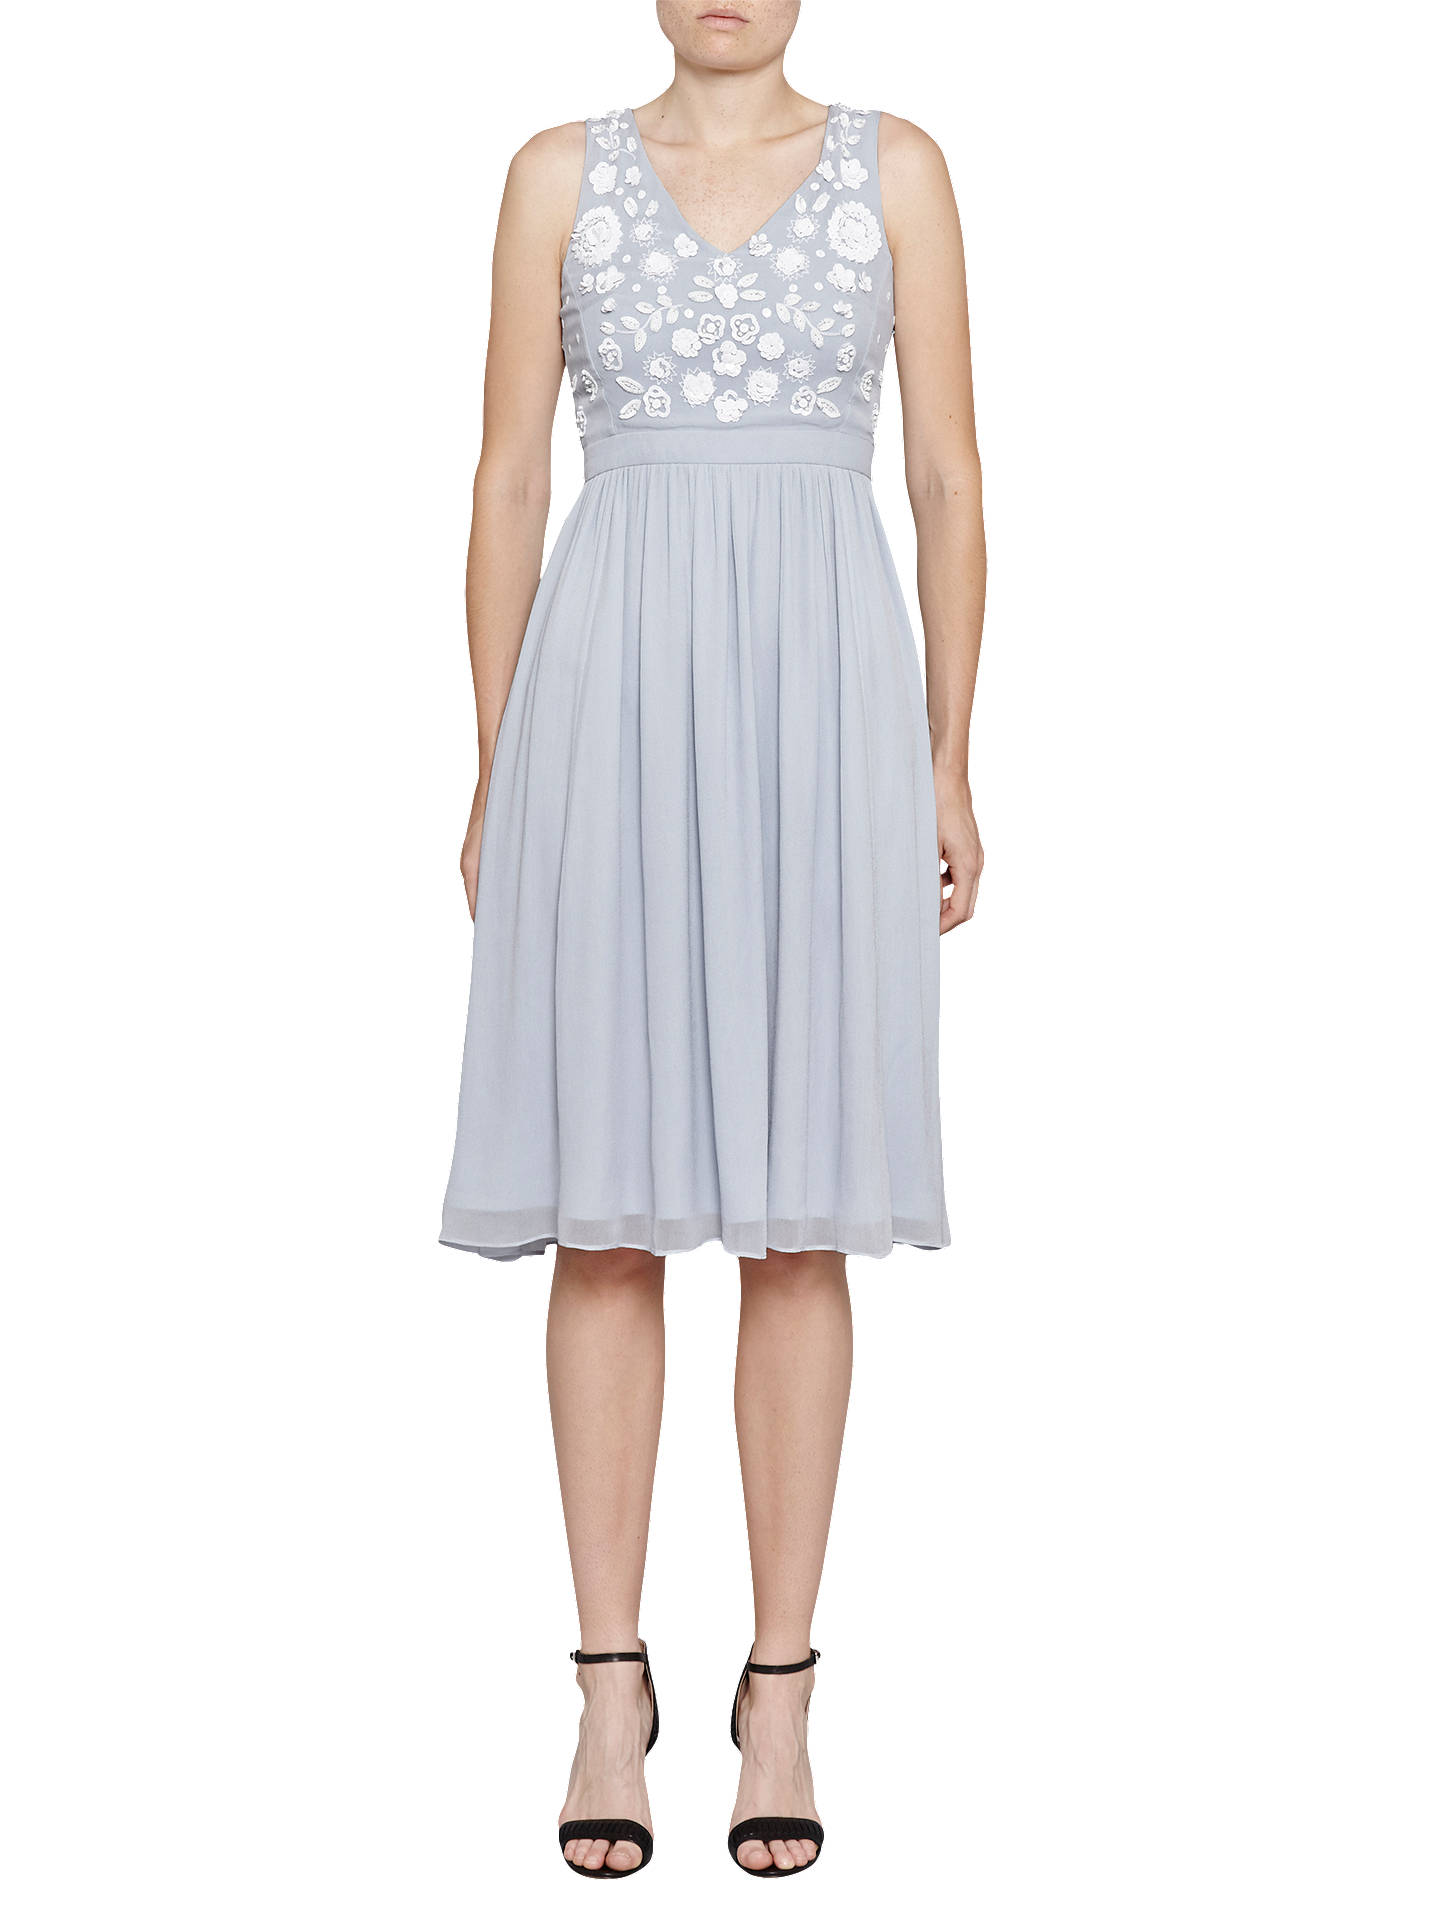 BuyFrench Connection Dalia Floral Embroidered Dress d1234469c